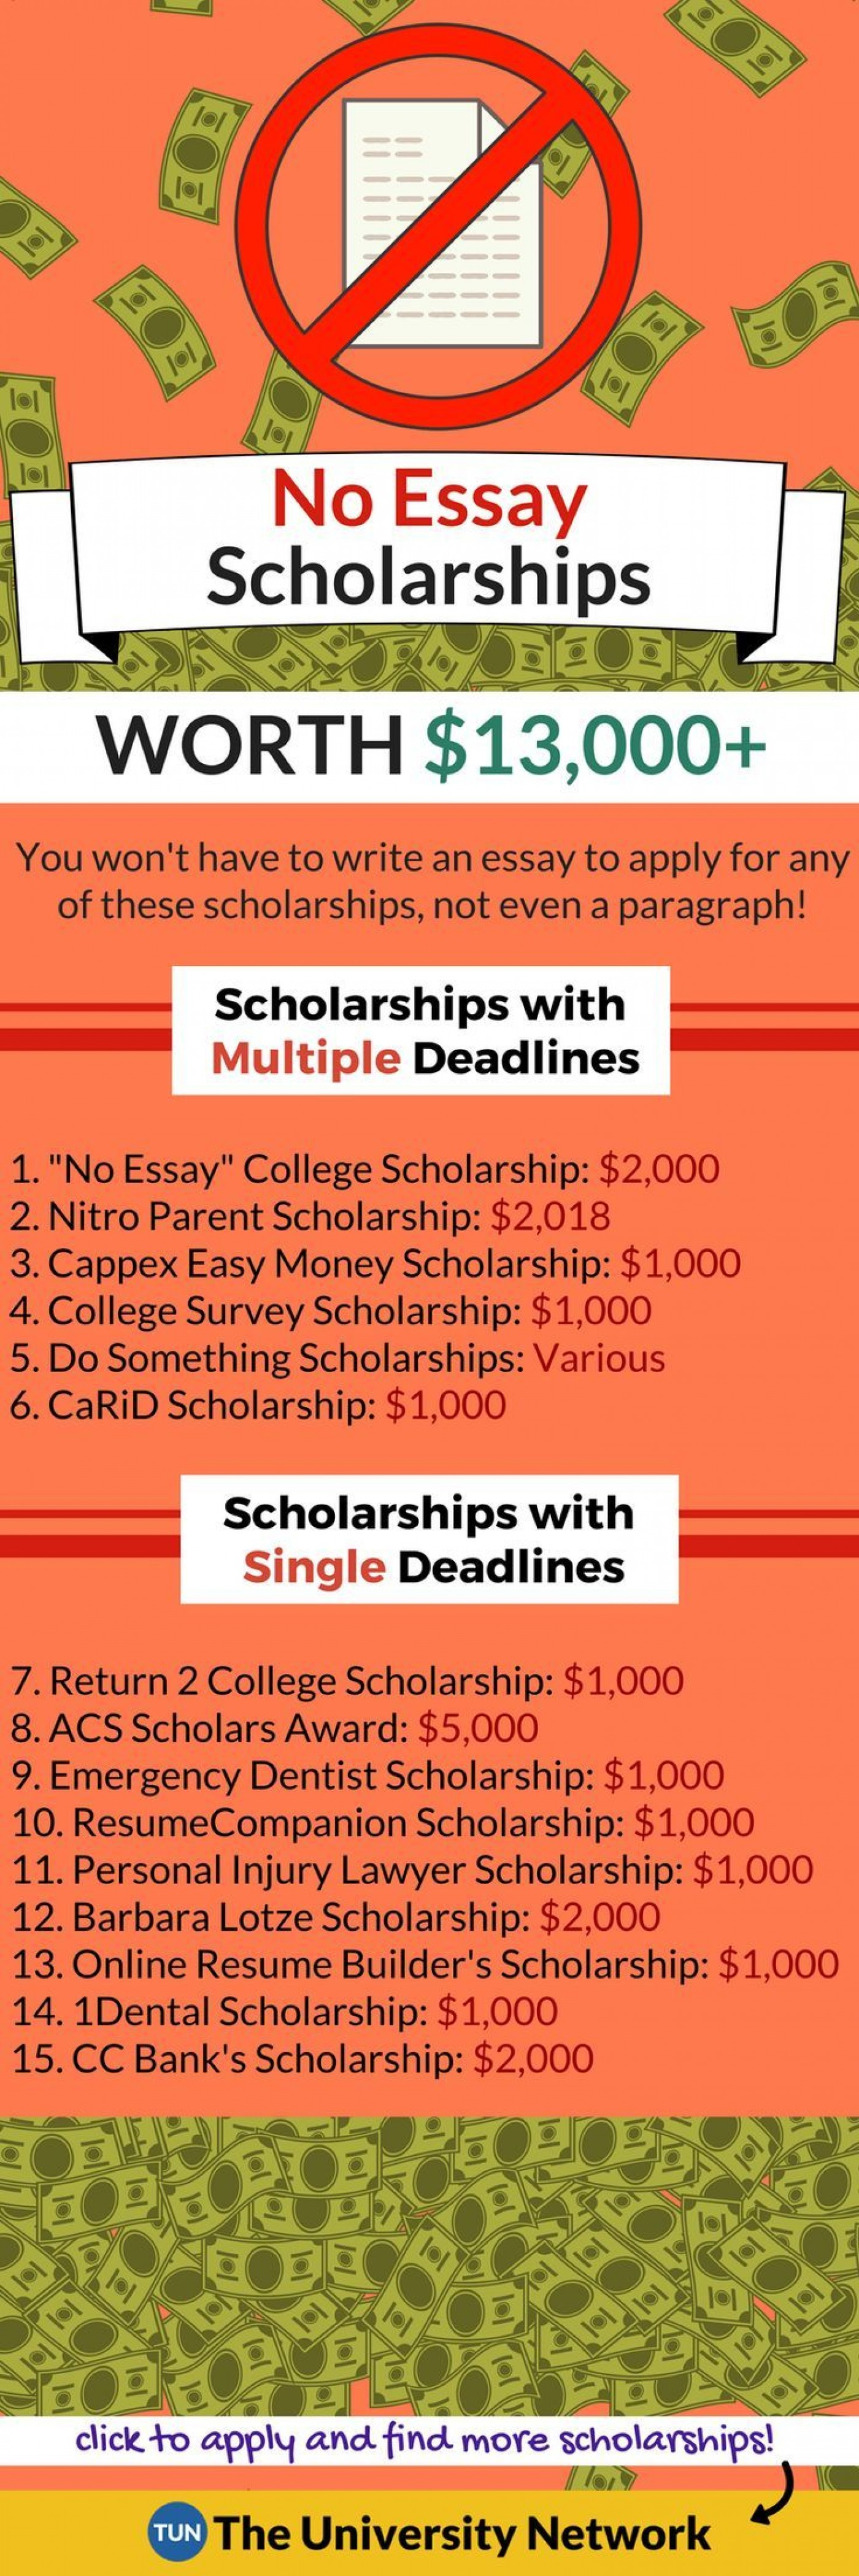 013 Essay Example No Exceptional Scholarships December 2018 For Undergraduates 1400